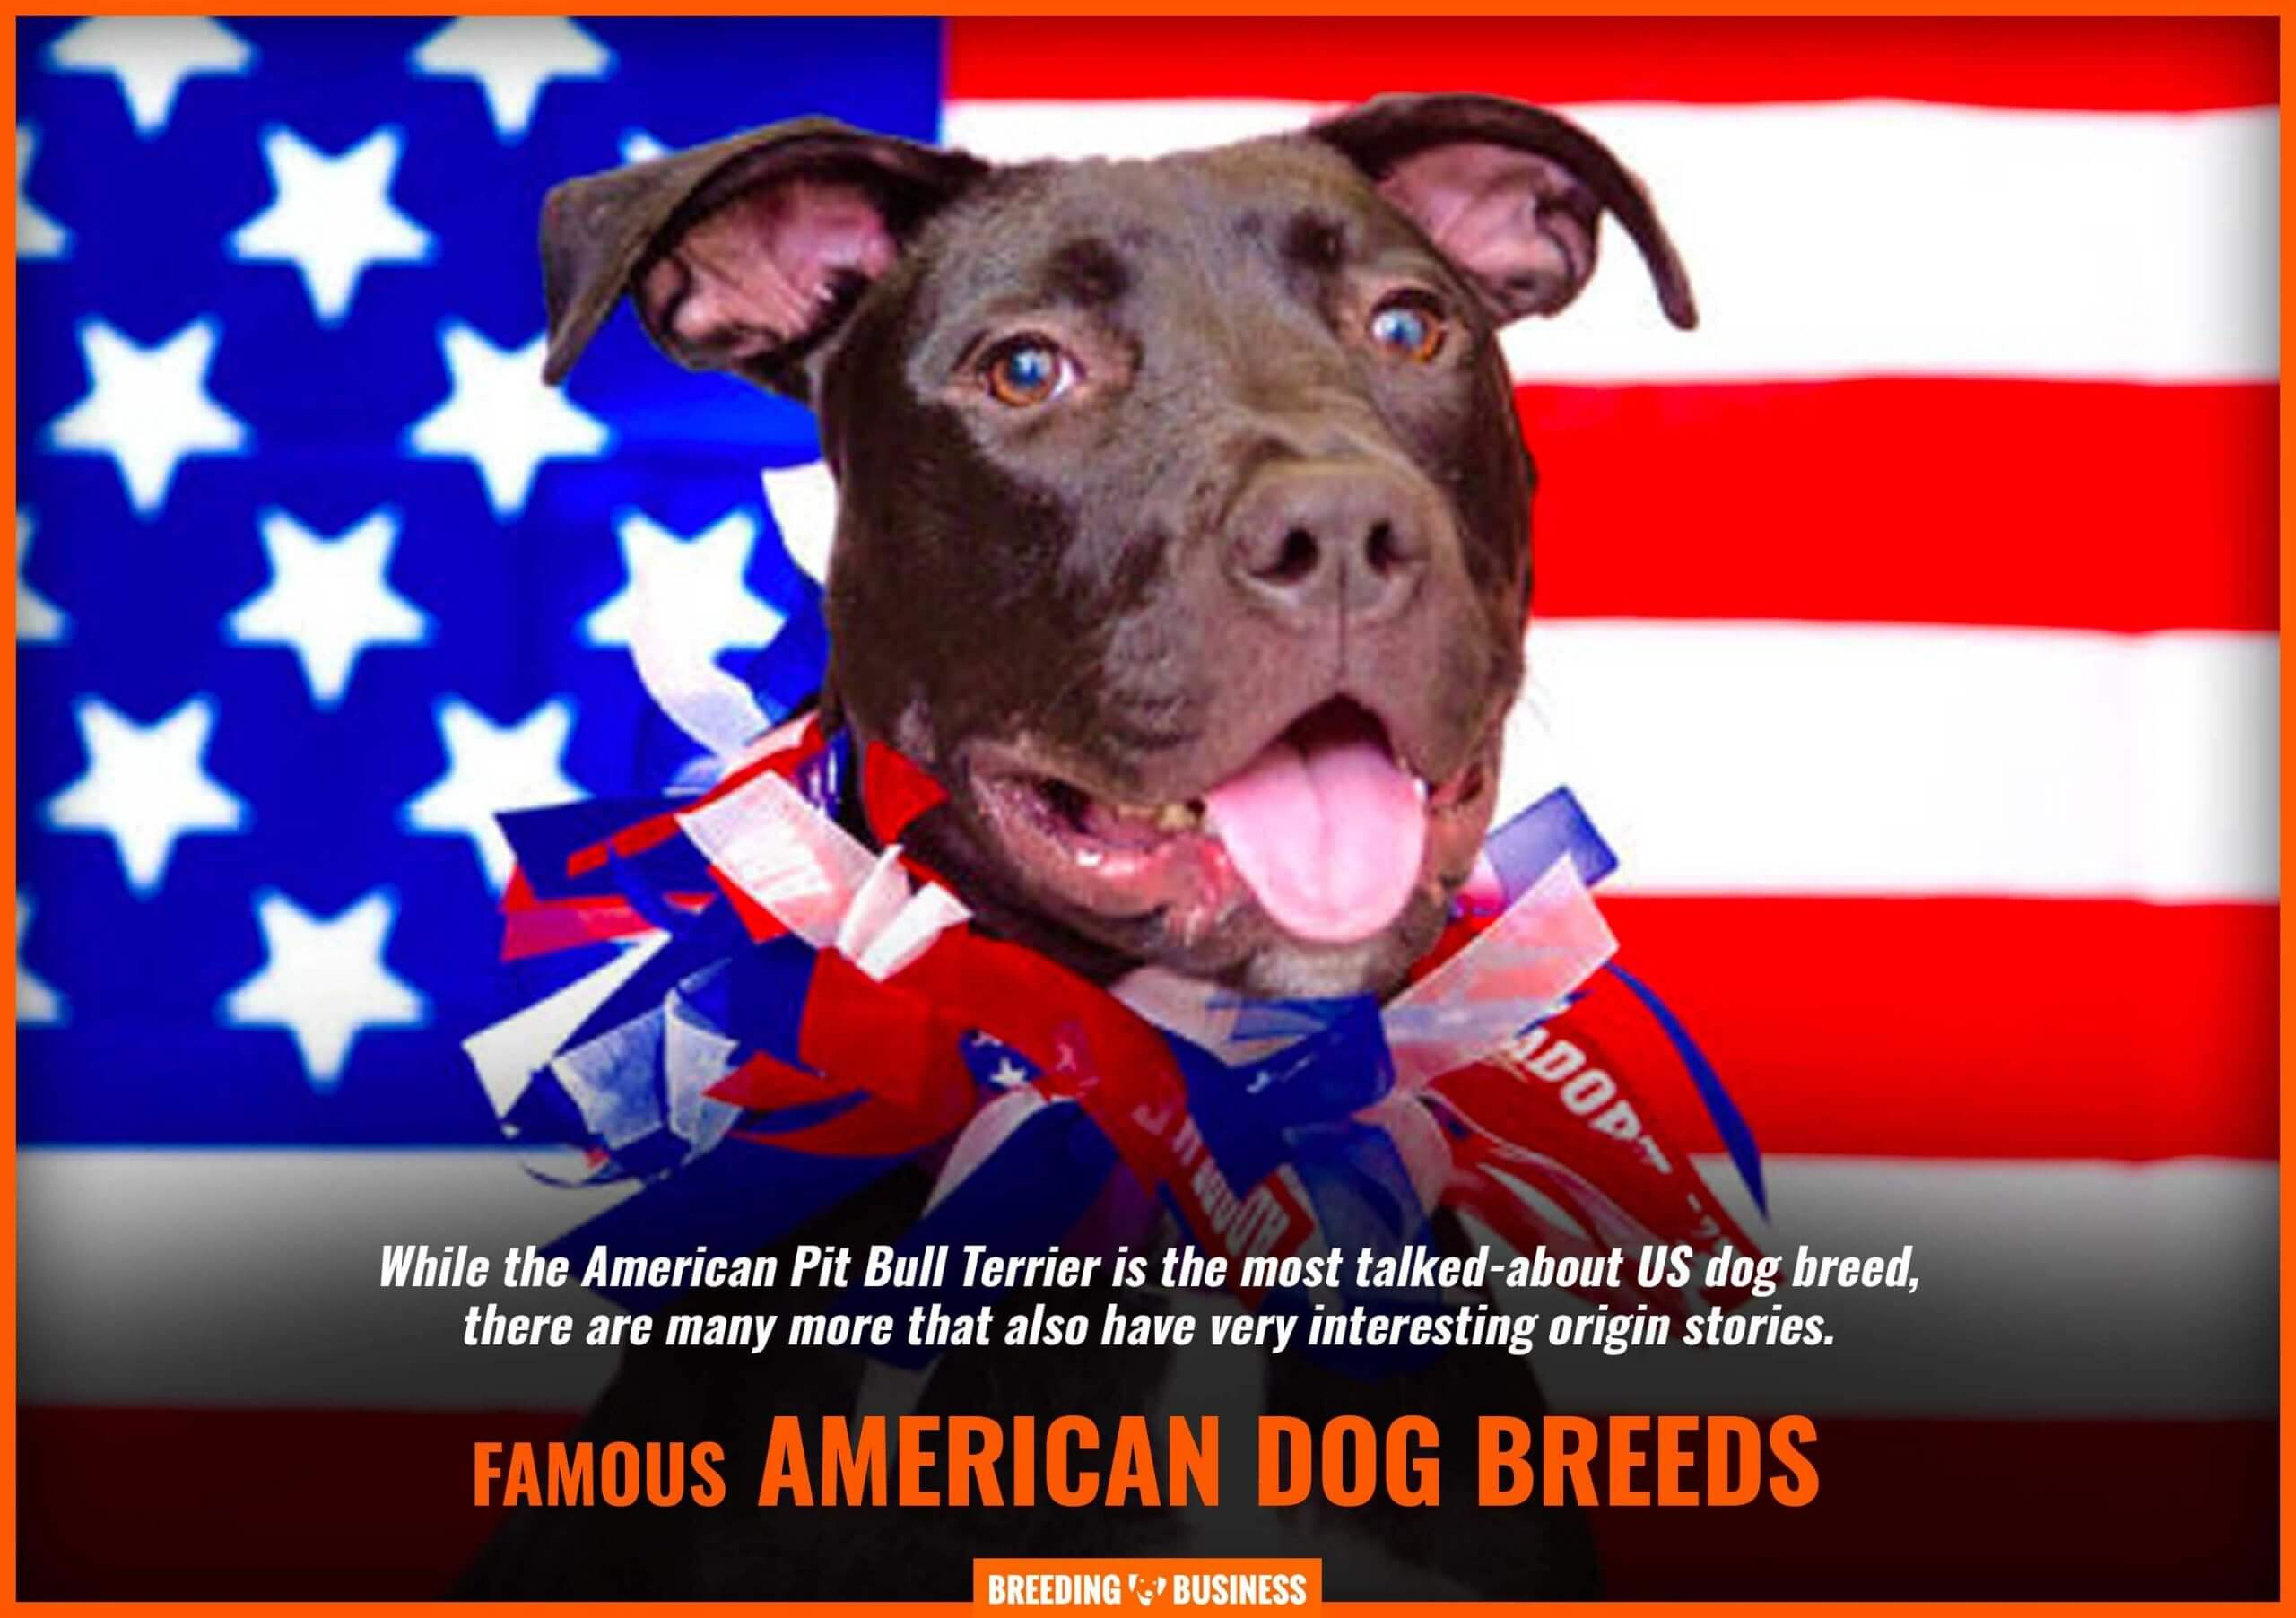 North American dog breeds